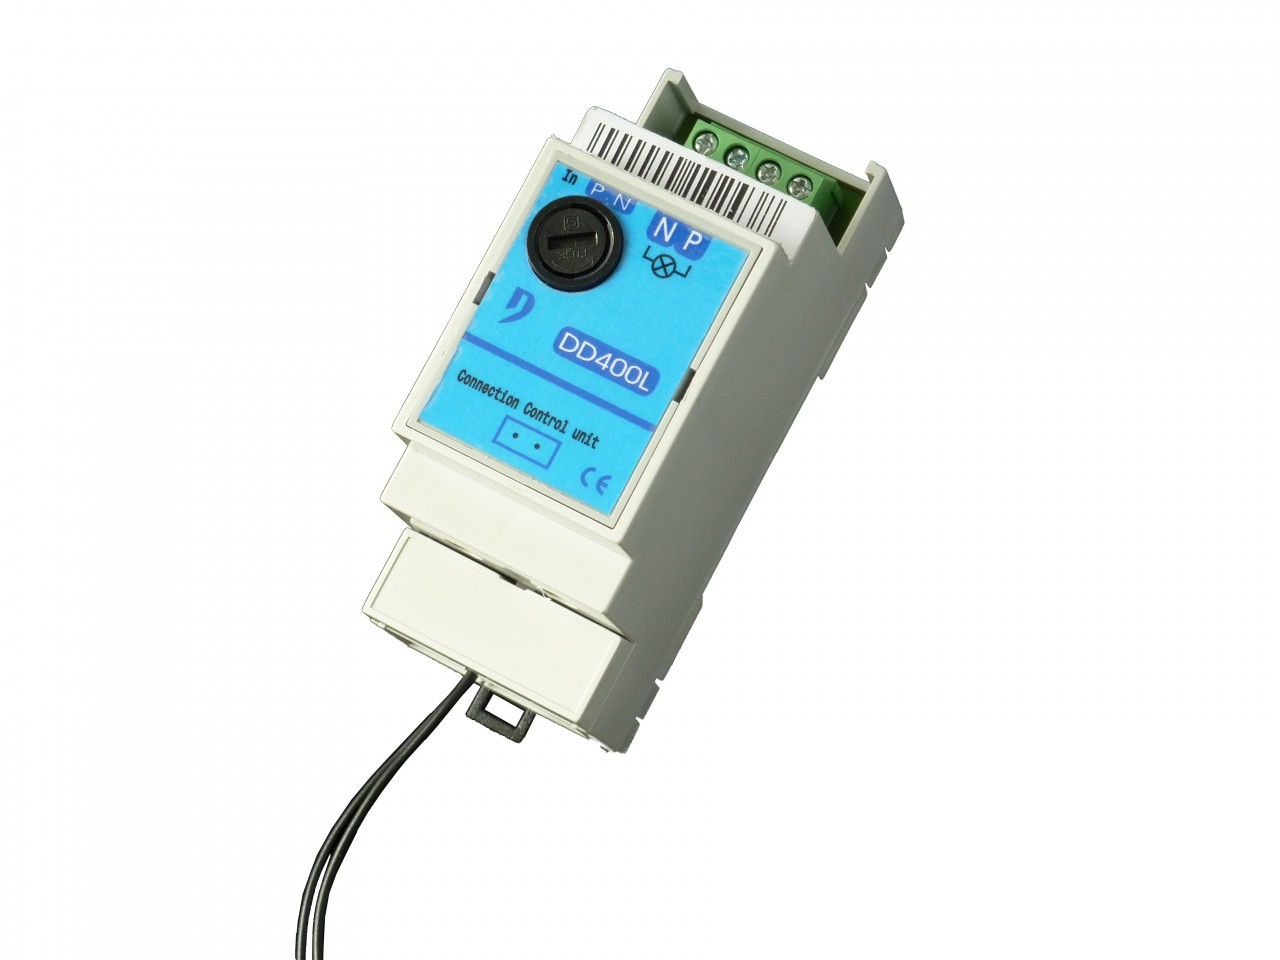 Modulo Dimmer LED - DD400L